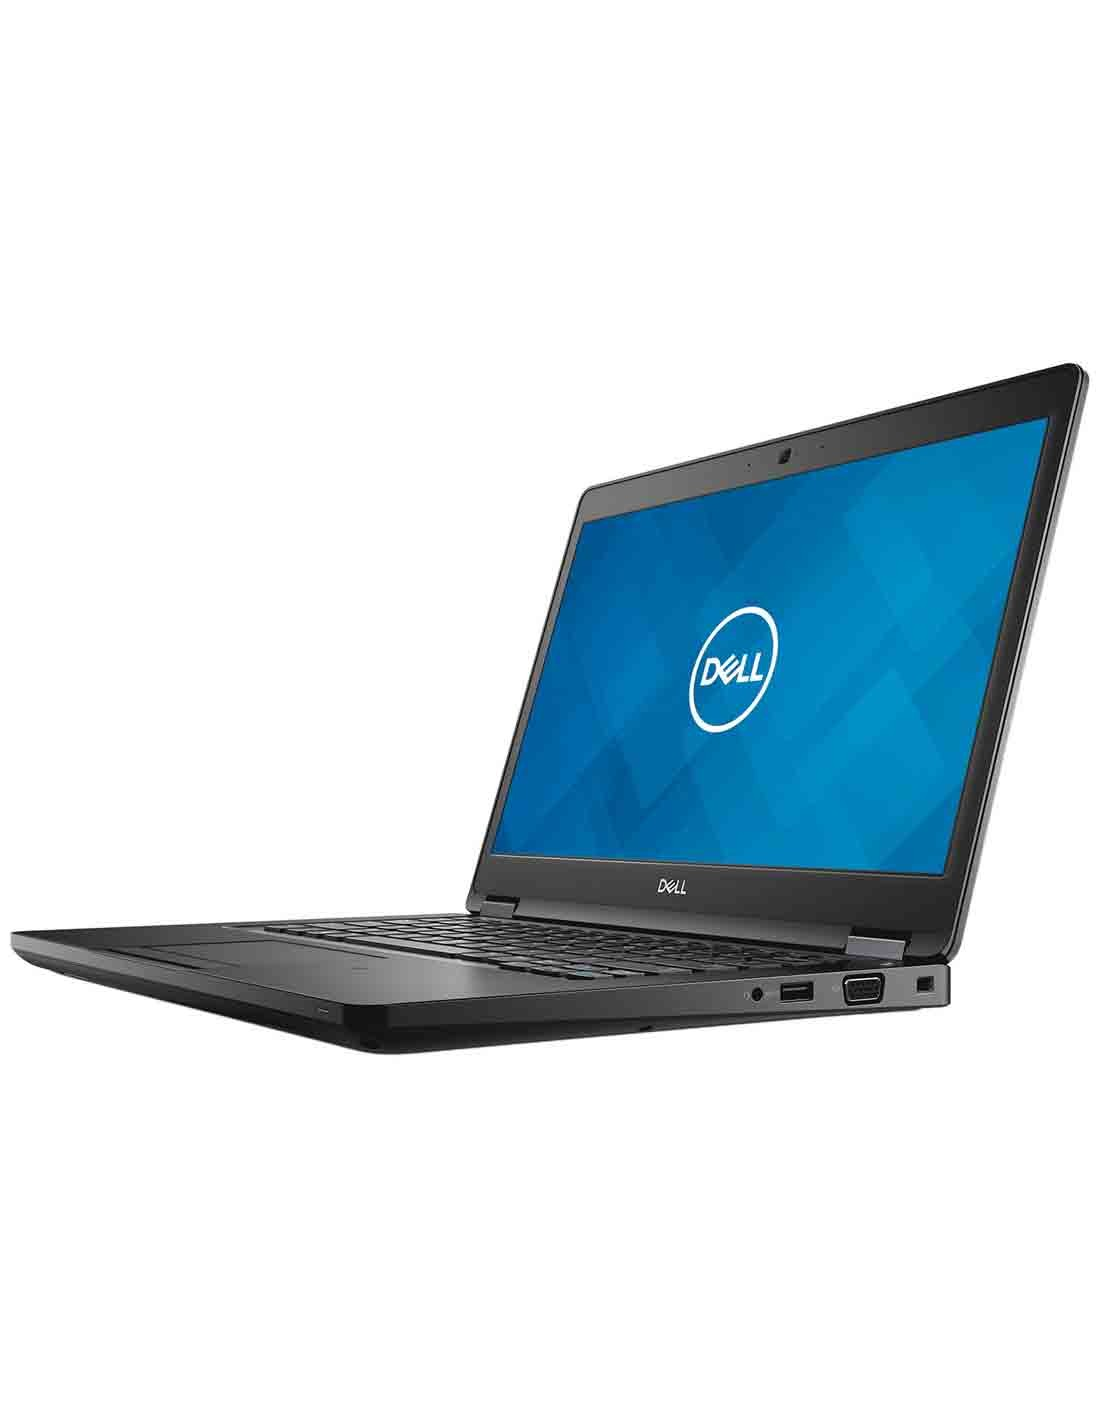 Dell Latitude 5580 Business Laptop images and photos in Dubai computer store